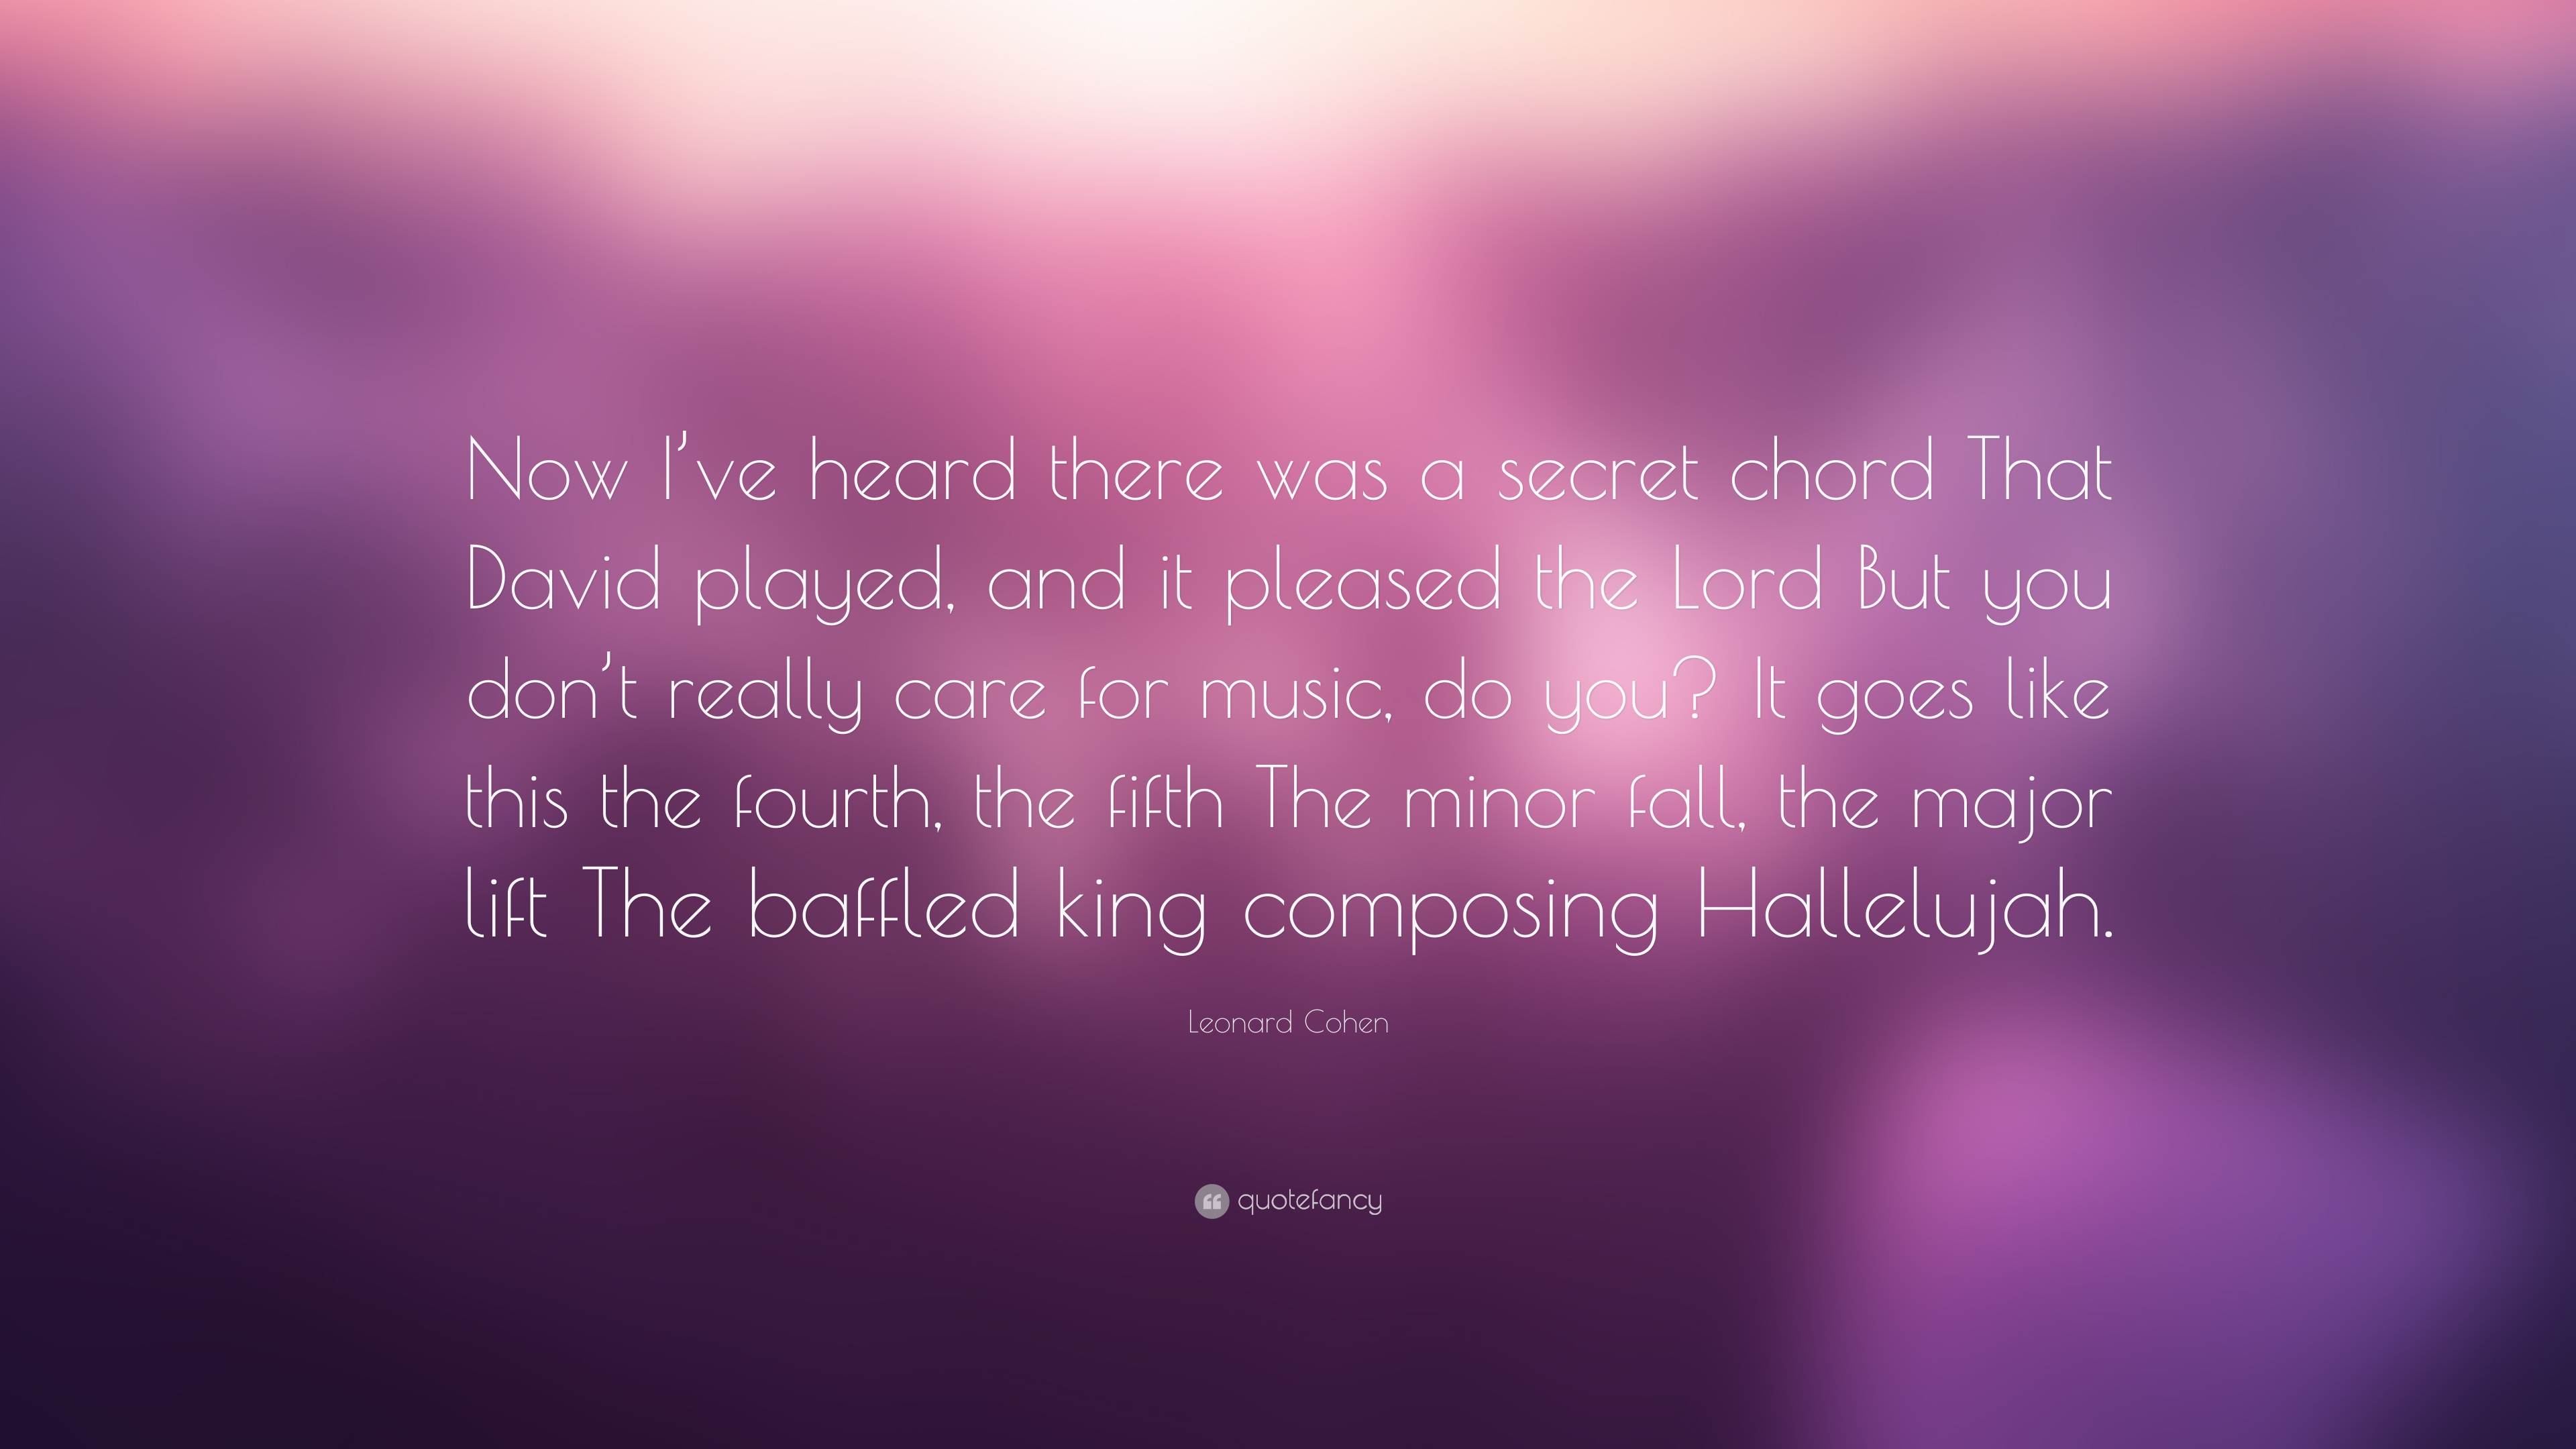 Leonard cohen quote now ive heard there was a secret chord that leonard cohen quote now ive heard there was a secret chord that hexwebz Image collections